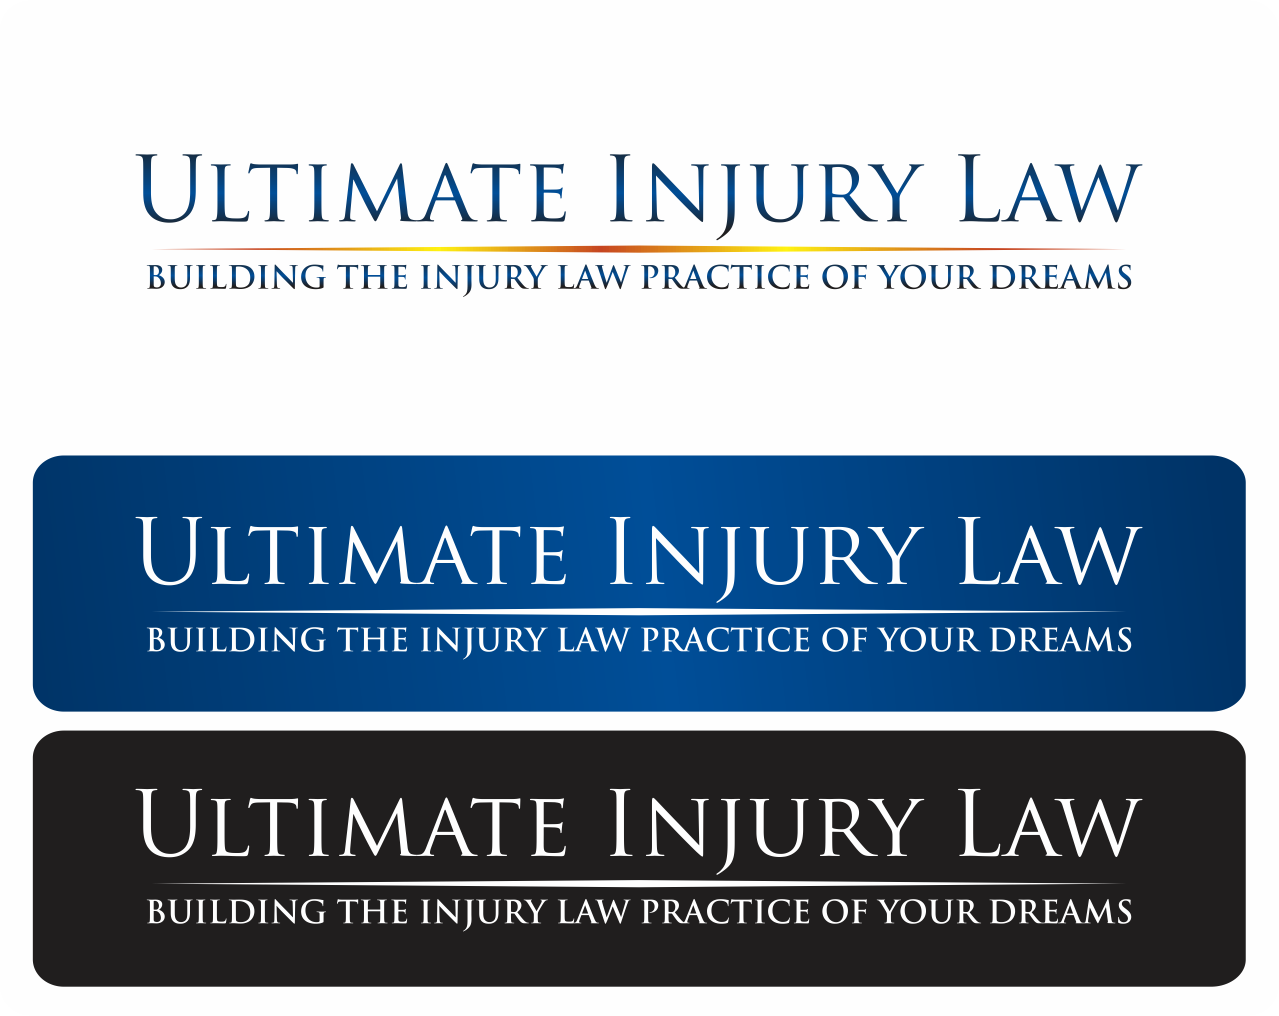 logo for Ultimate Injury Law